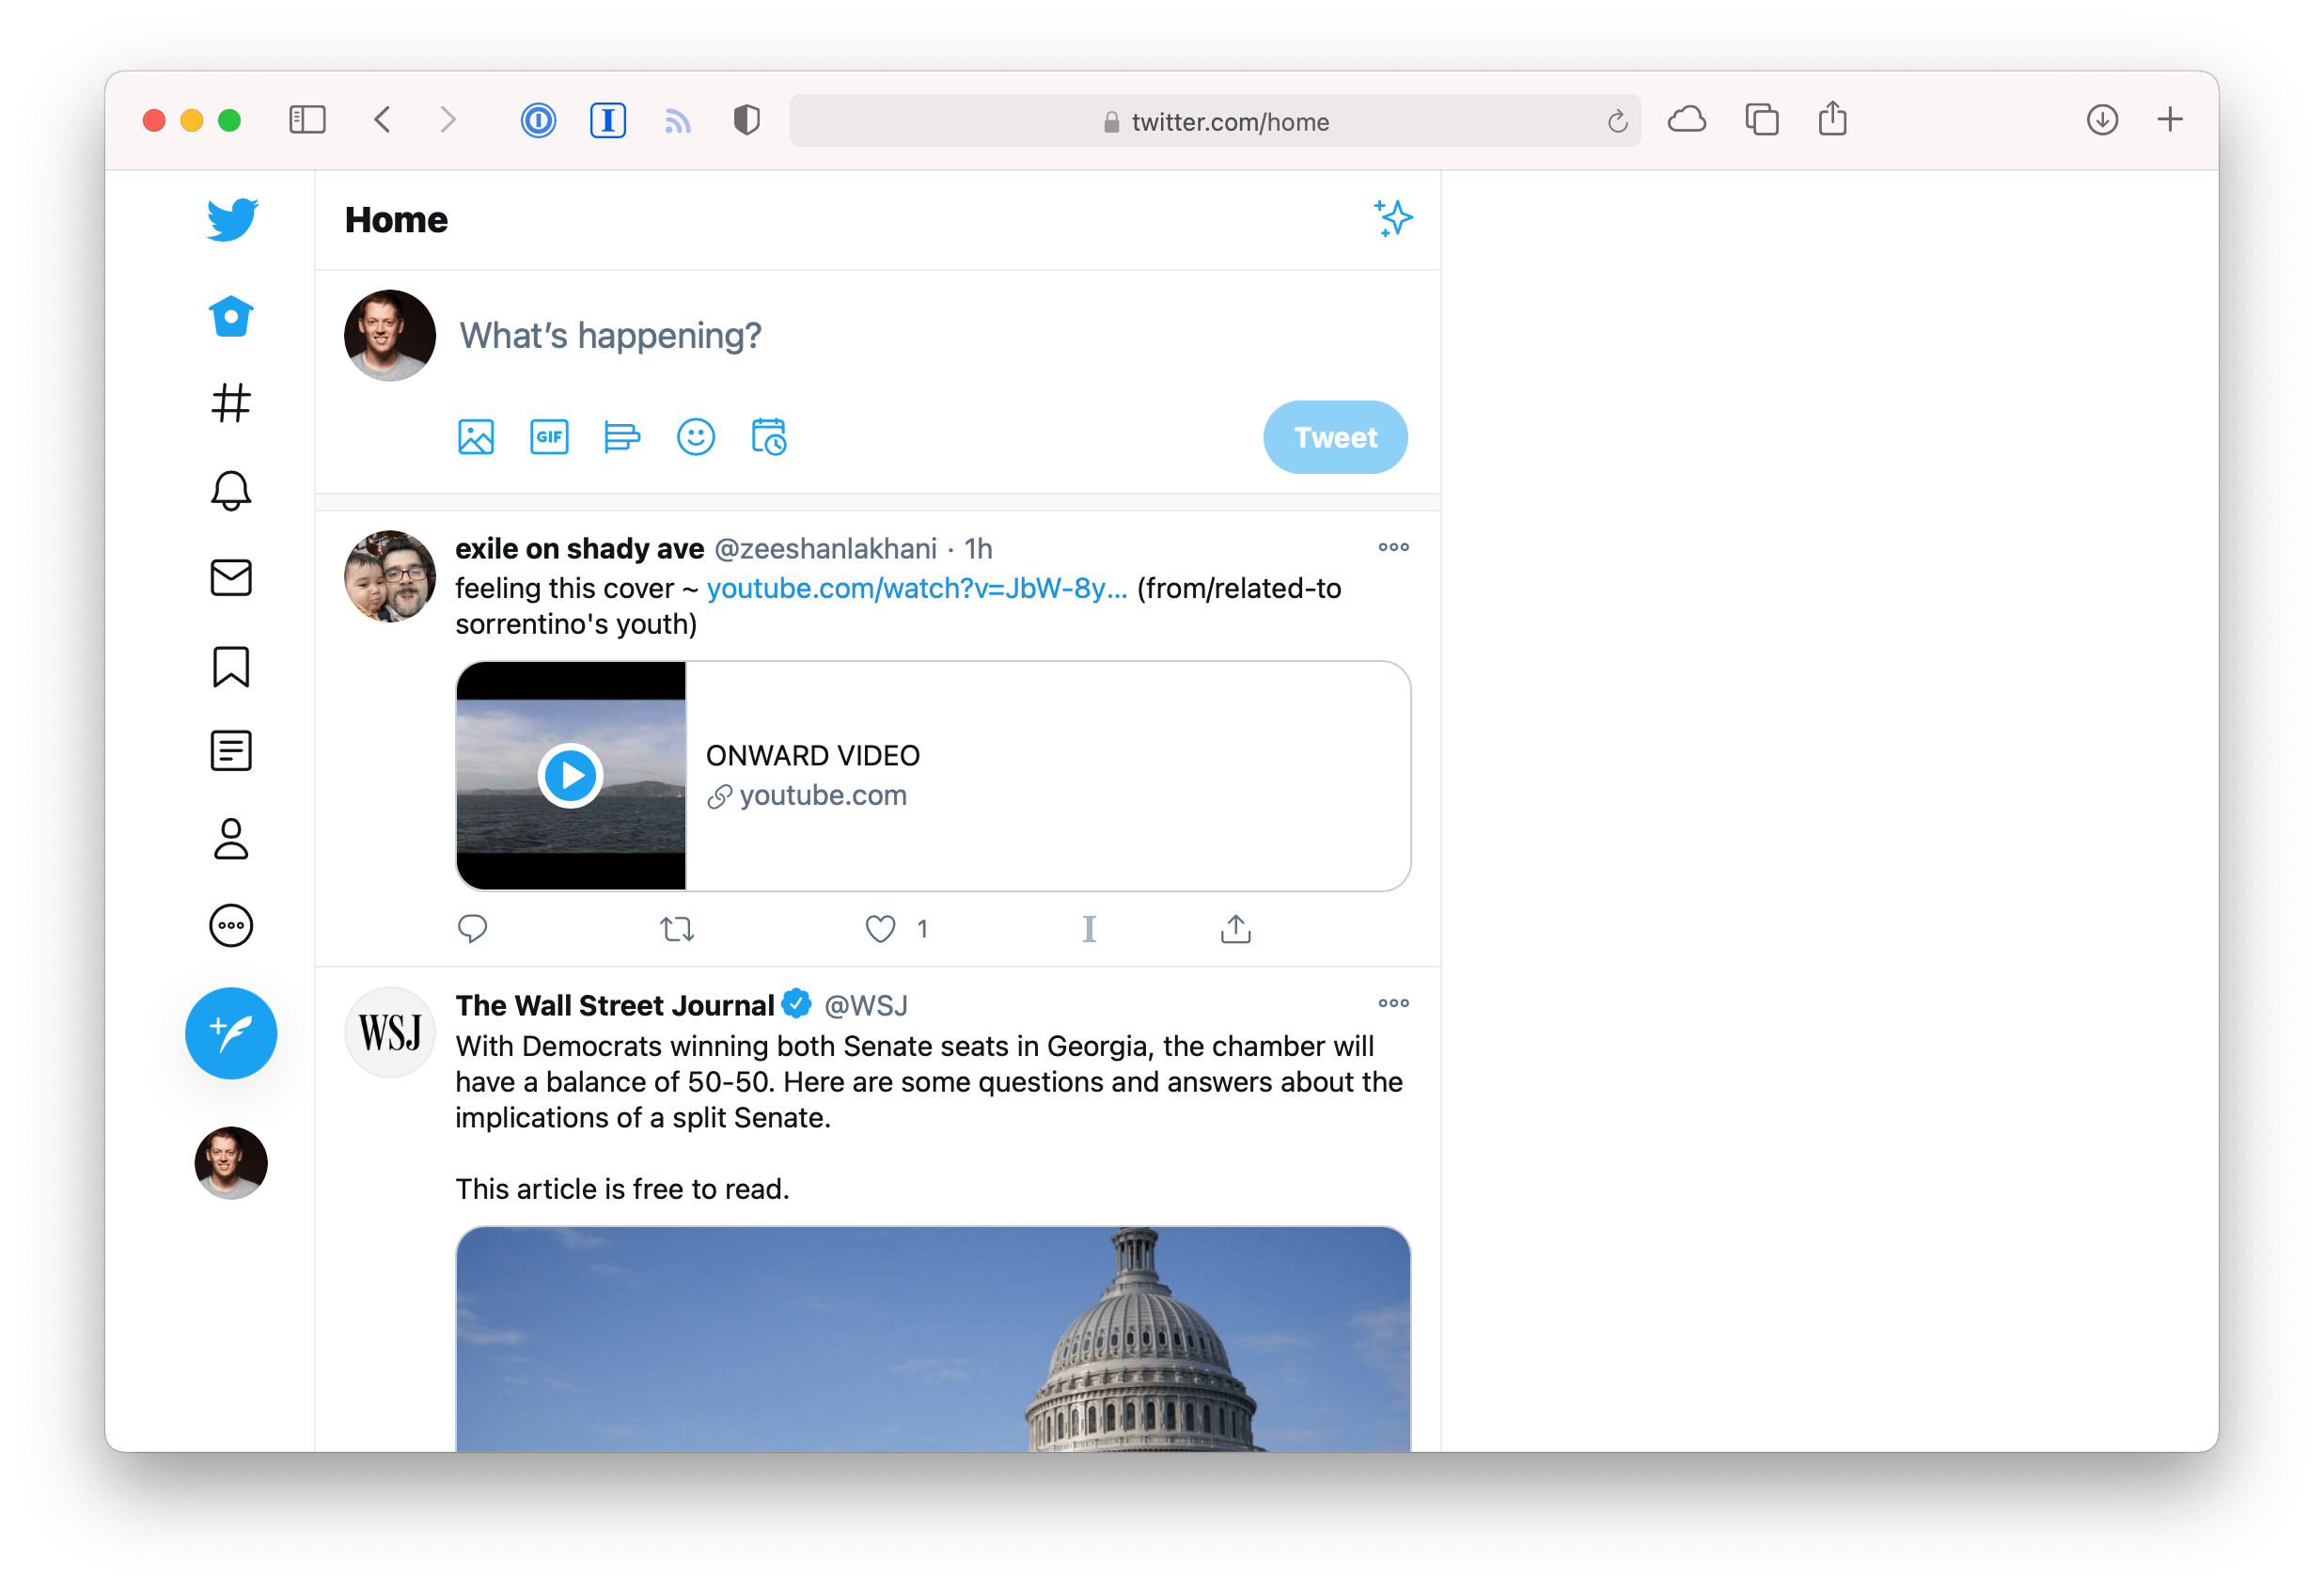 Screenshot of twitter.com in Safari with a custom style sheet applied that hides the sidebar and the DM widget in the bottom right.